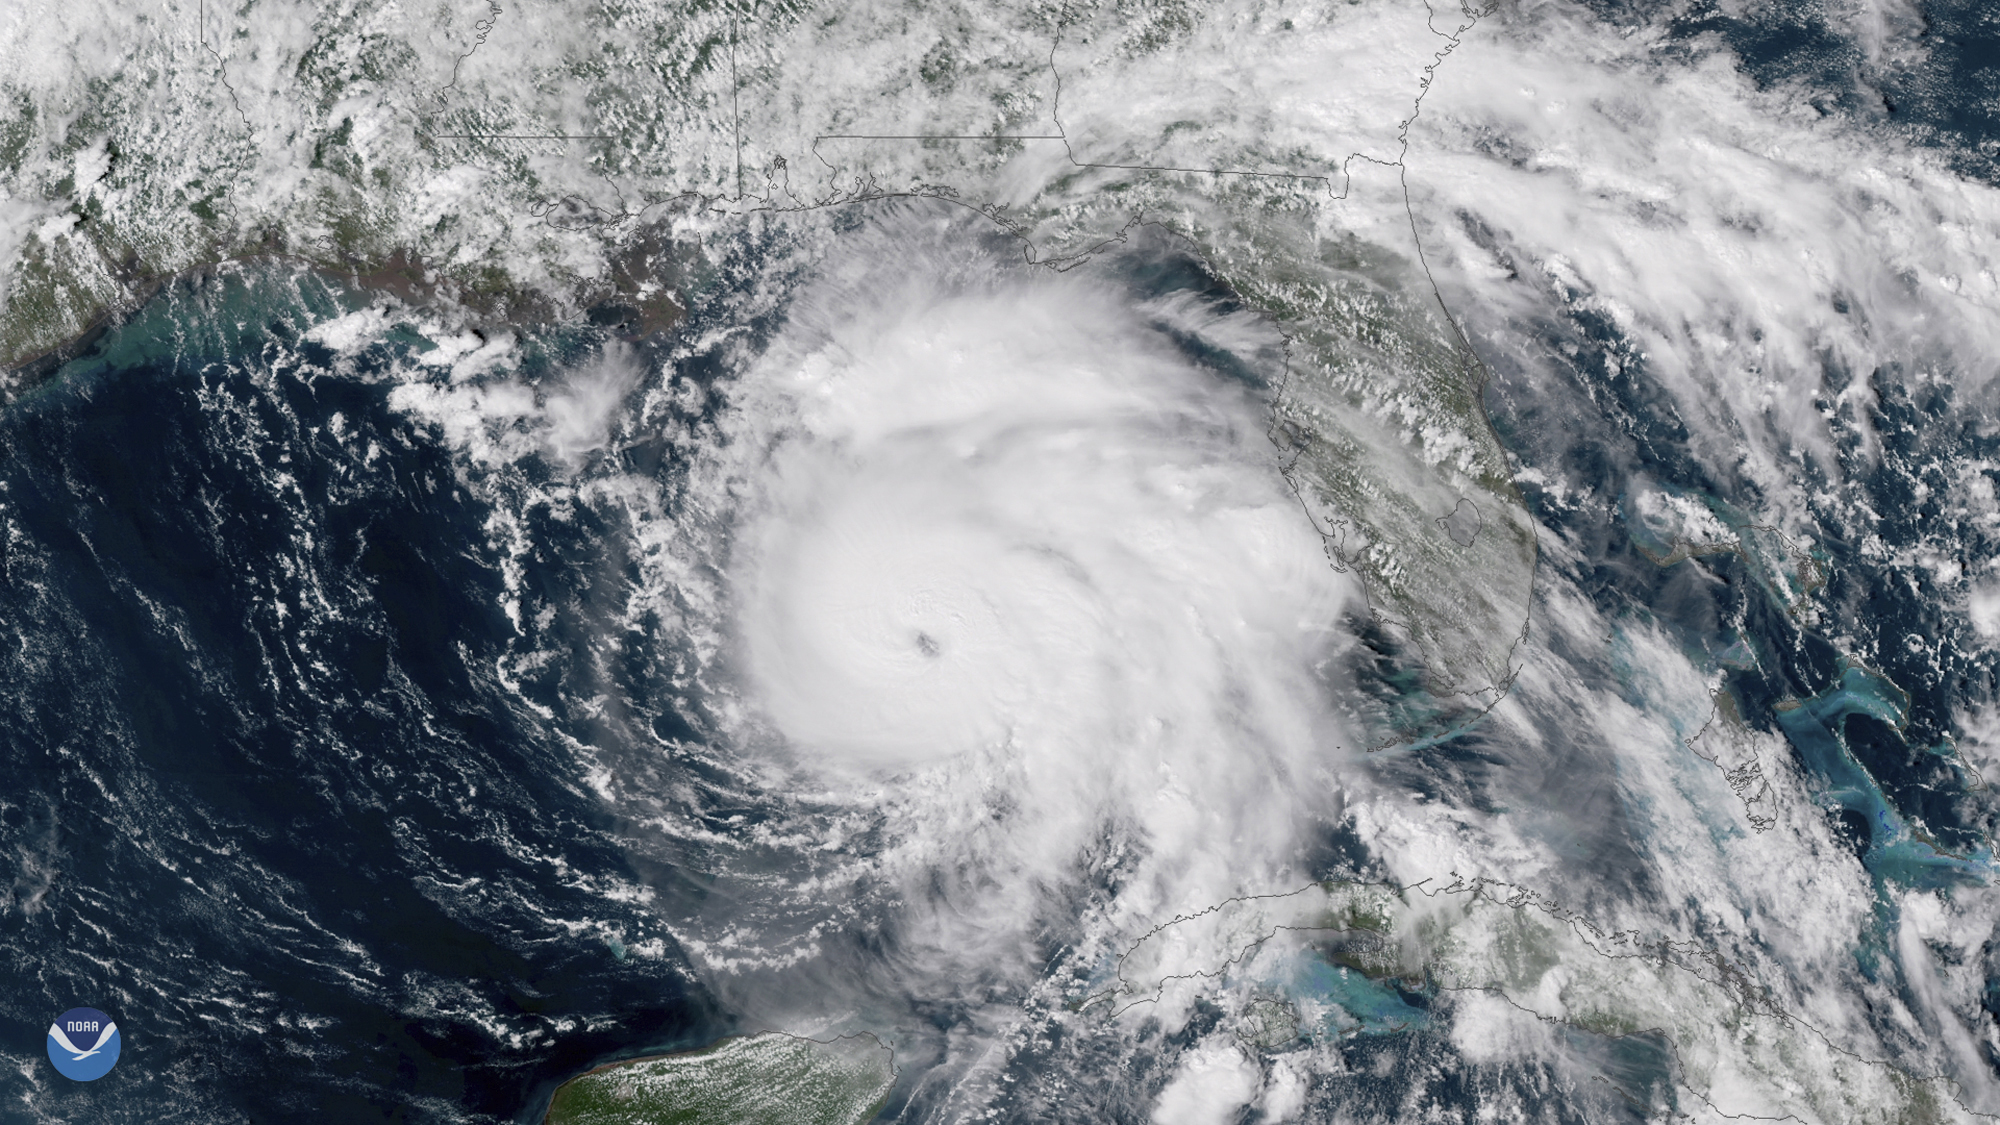 This Tuesday, Oct. 9, 2018 satellite image provided by NOAA shows Hurricane Michael, center, in the Gulf of Mexico.